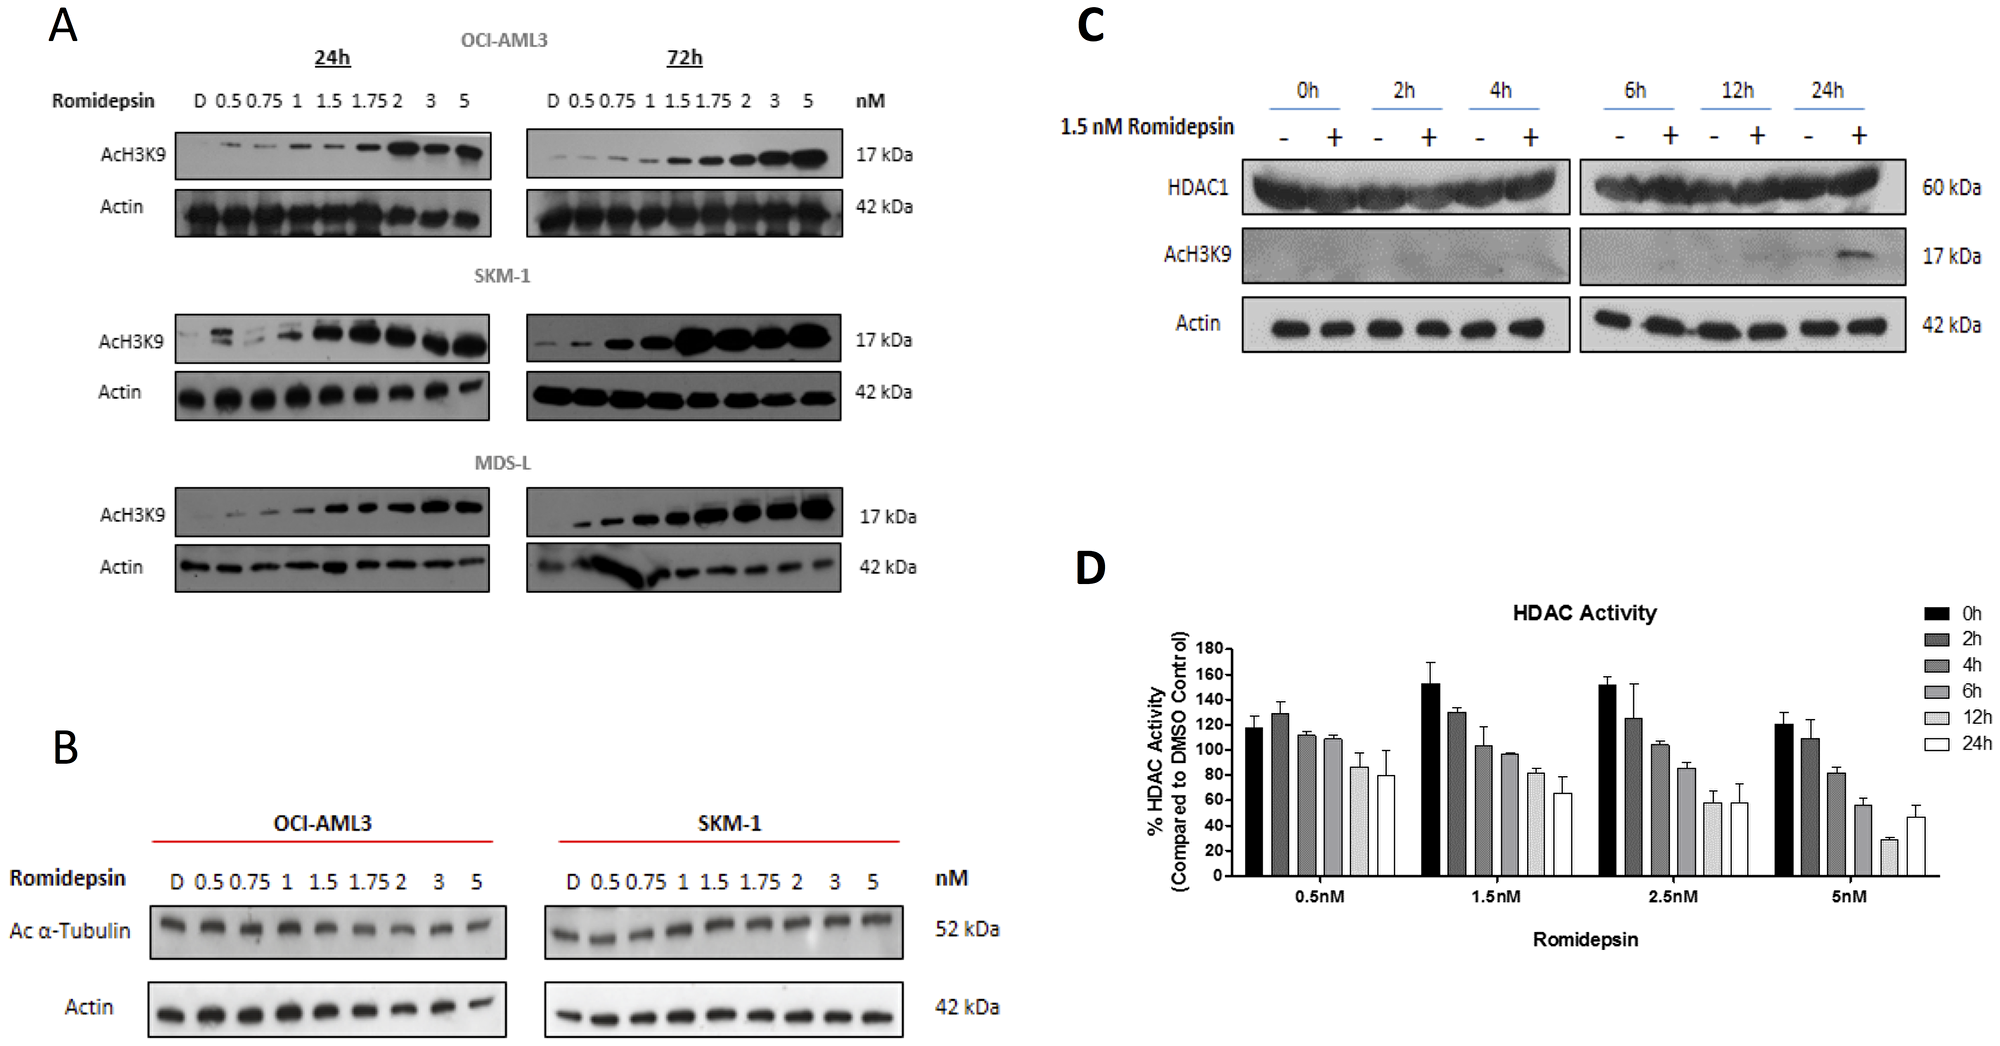 Romidepsin effects histone and protein acetylation.